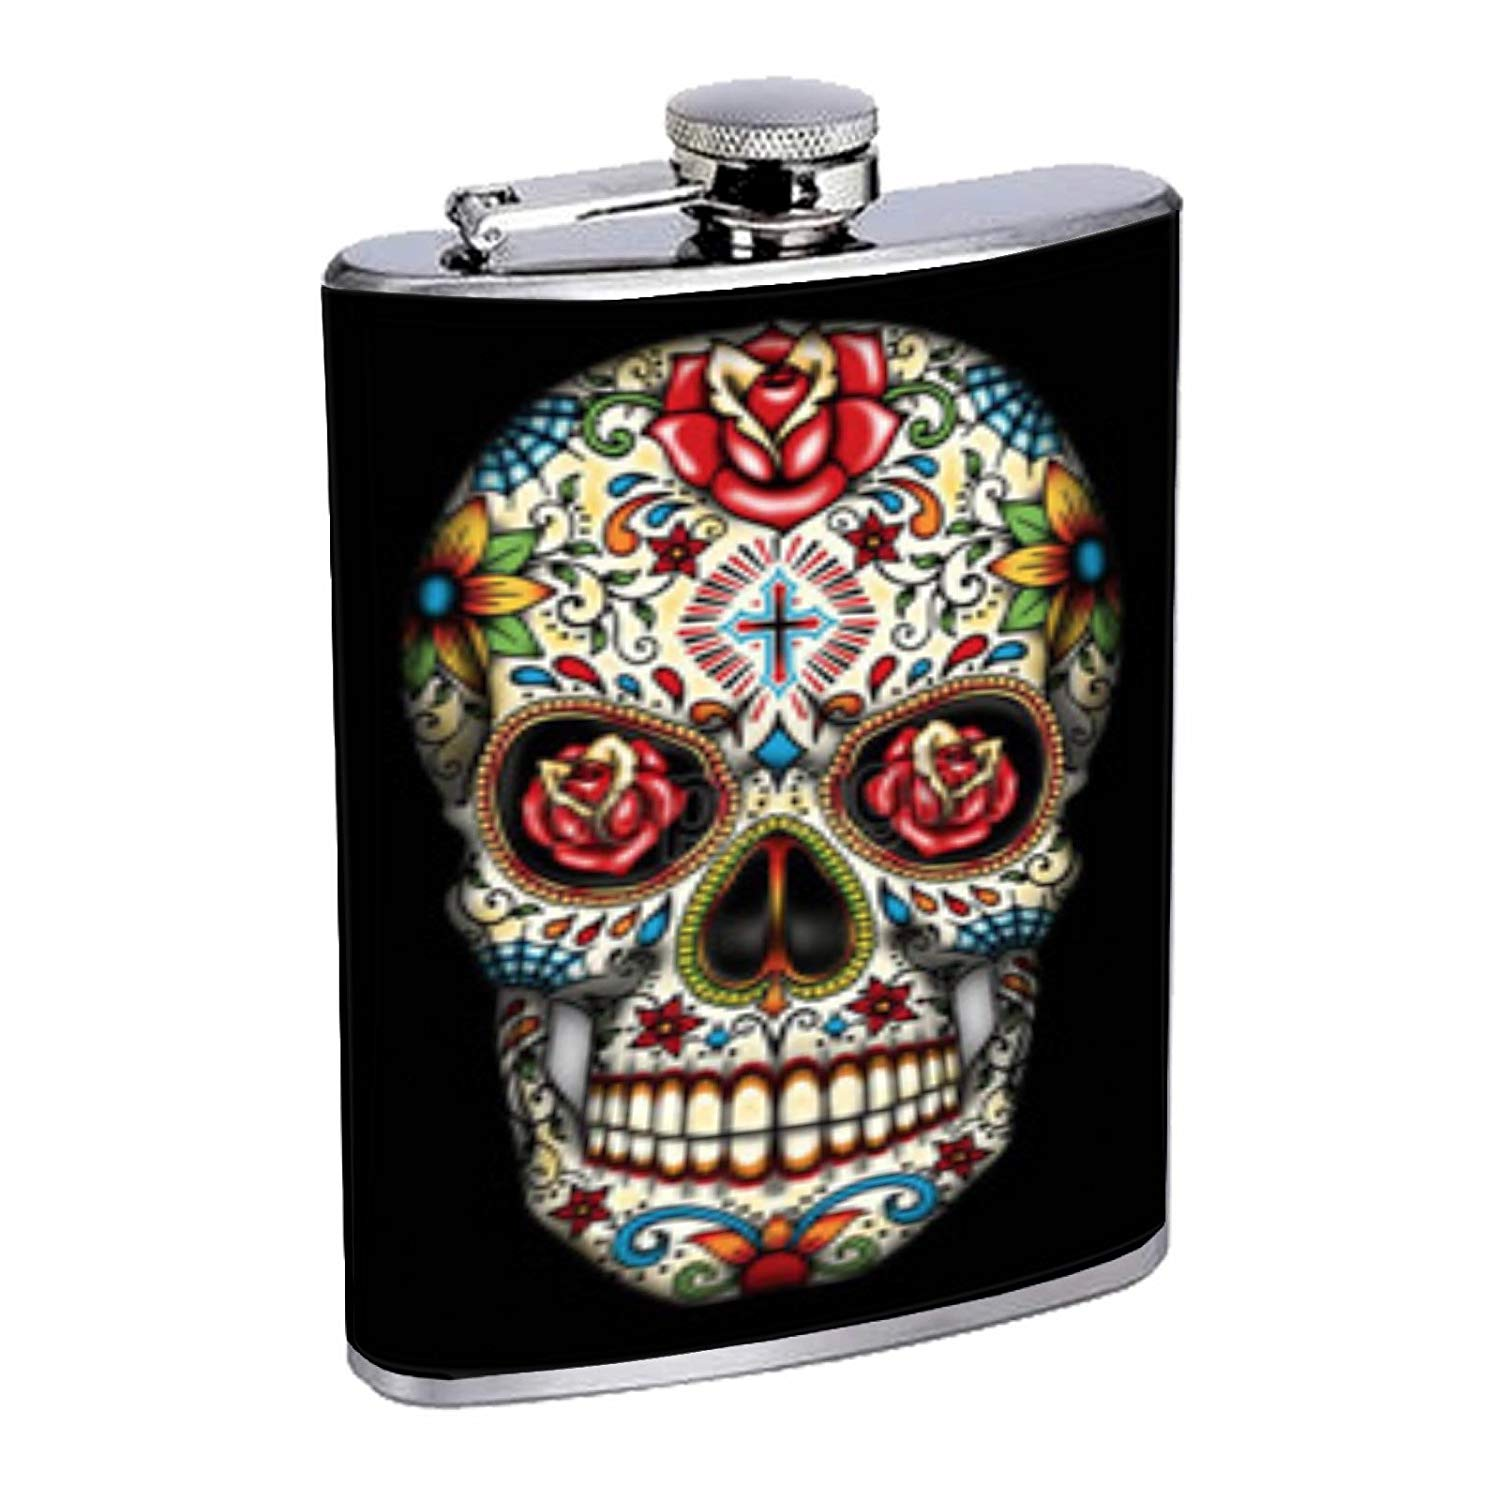 35592cff526 Get Quotations · Rose Cross Sugar Skull Have Fun Gifts Elegant Fine Touch  Leak Proof Small Primo 18